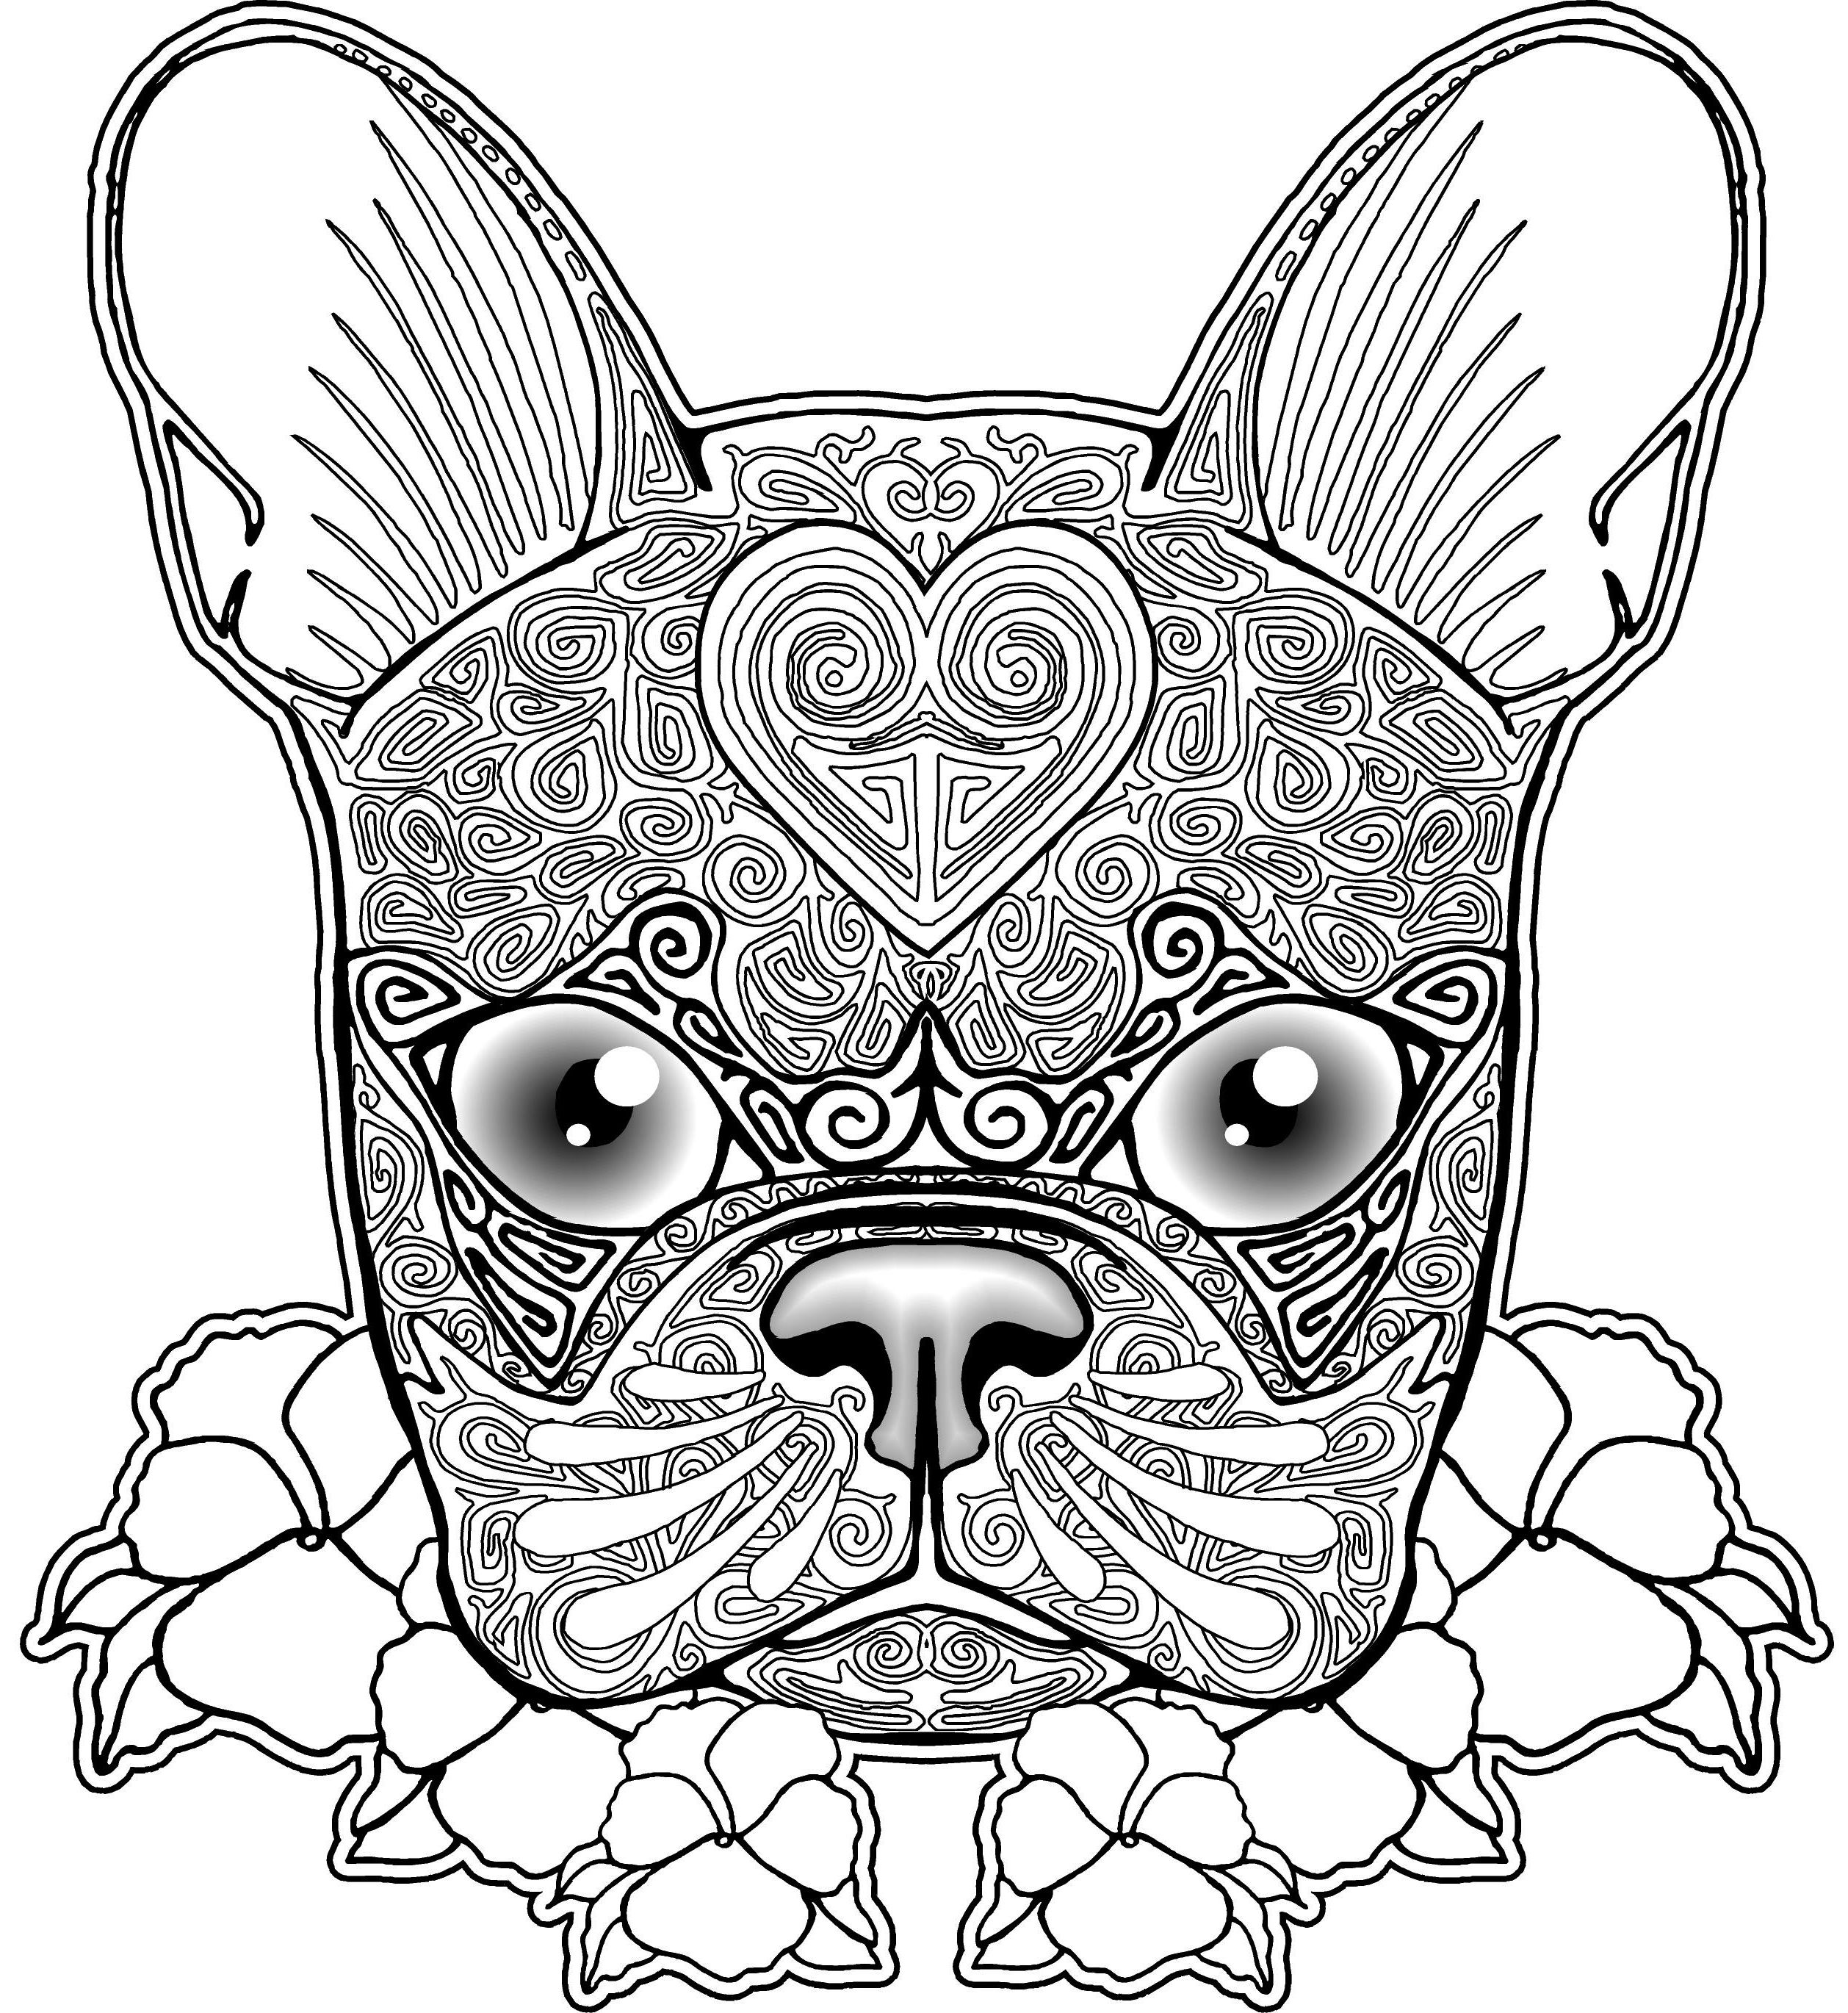 dogs pictures to color pug puppy coloring page coloring home color pictures dogs to